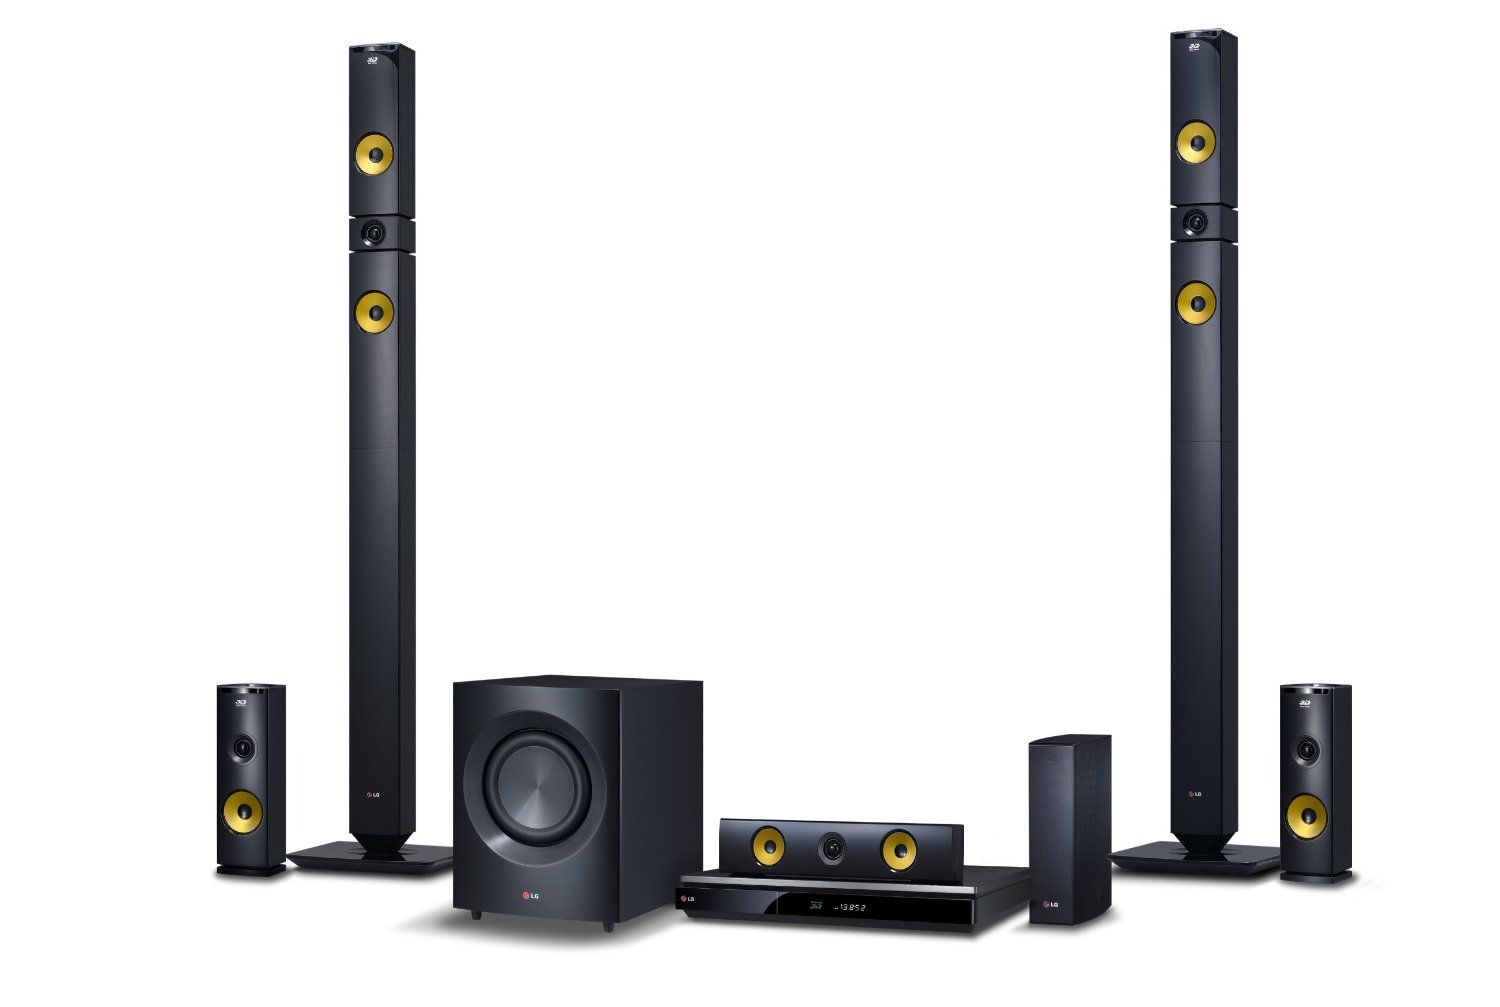 Lg bh9430pw 1460w 3d bluray theater system